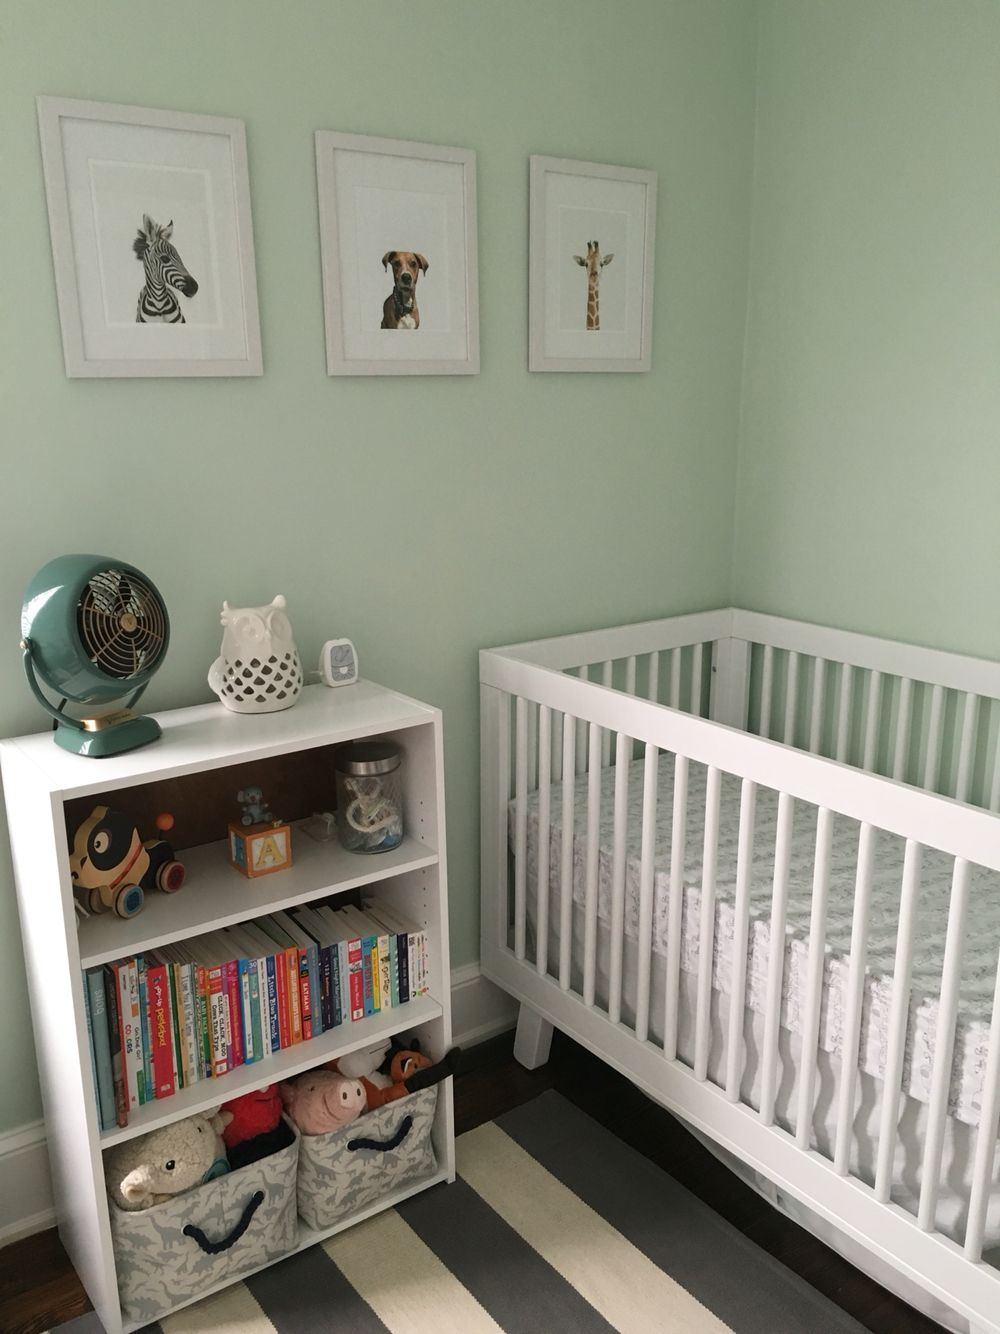 Our Nursery Paint Color Benjamin Moores Bath Salts Little Darlings Prints And A Homemade One